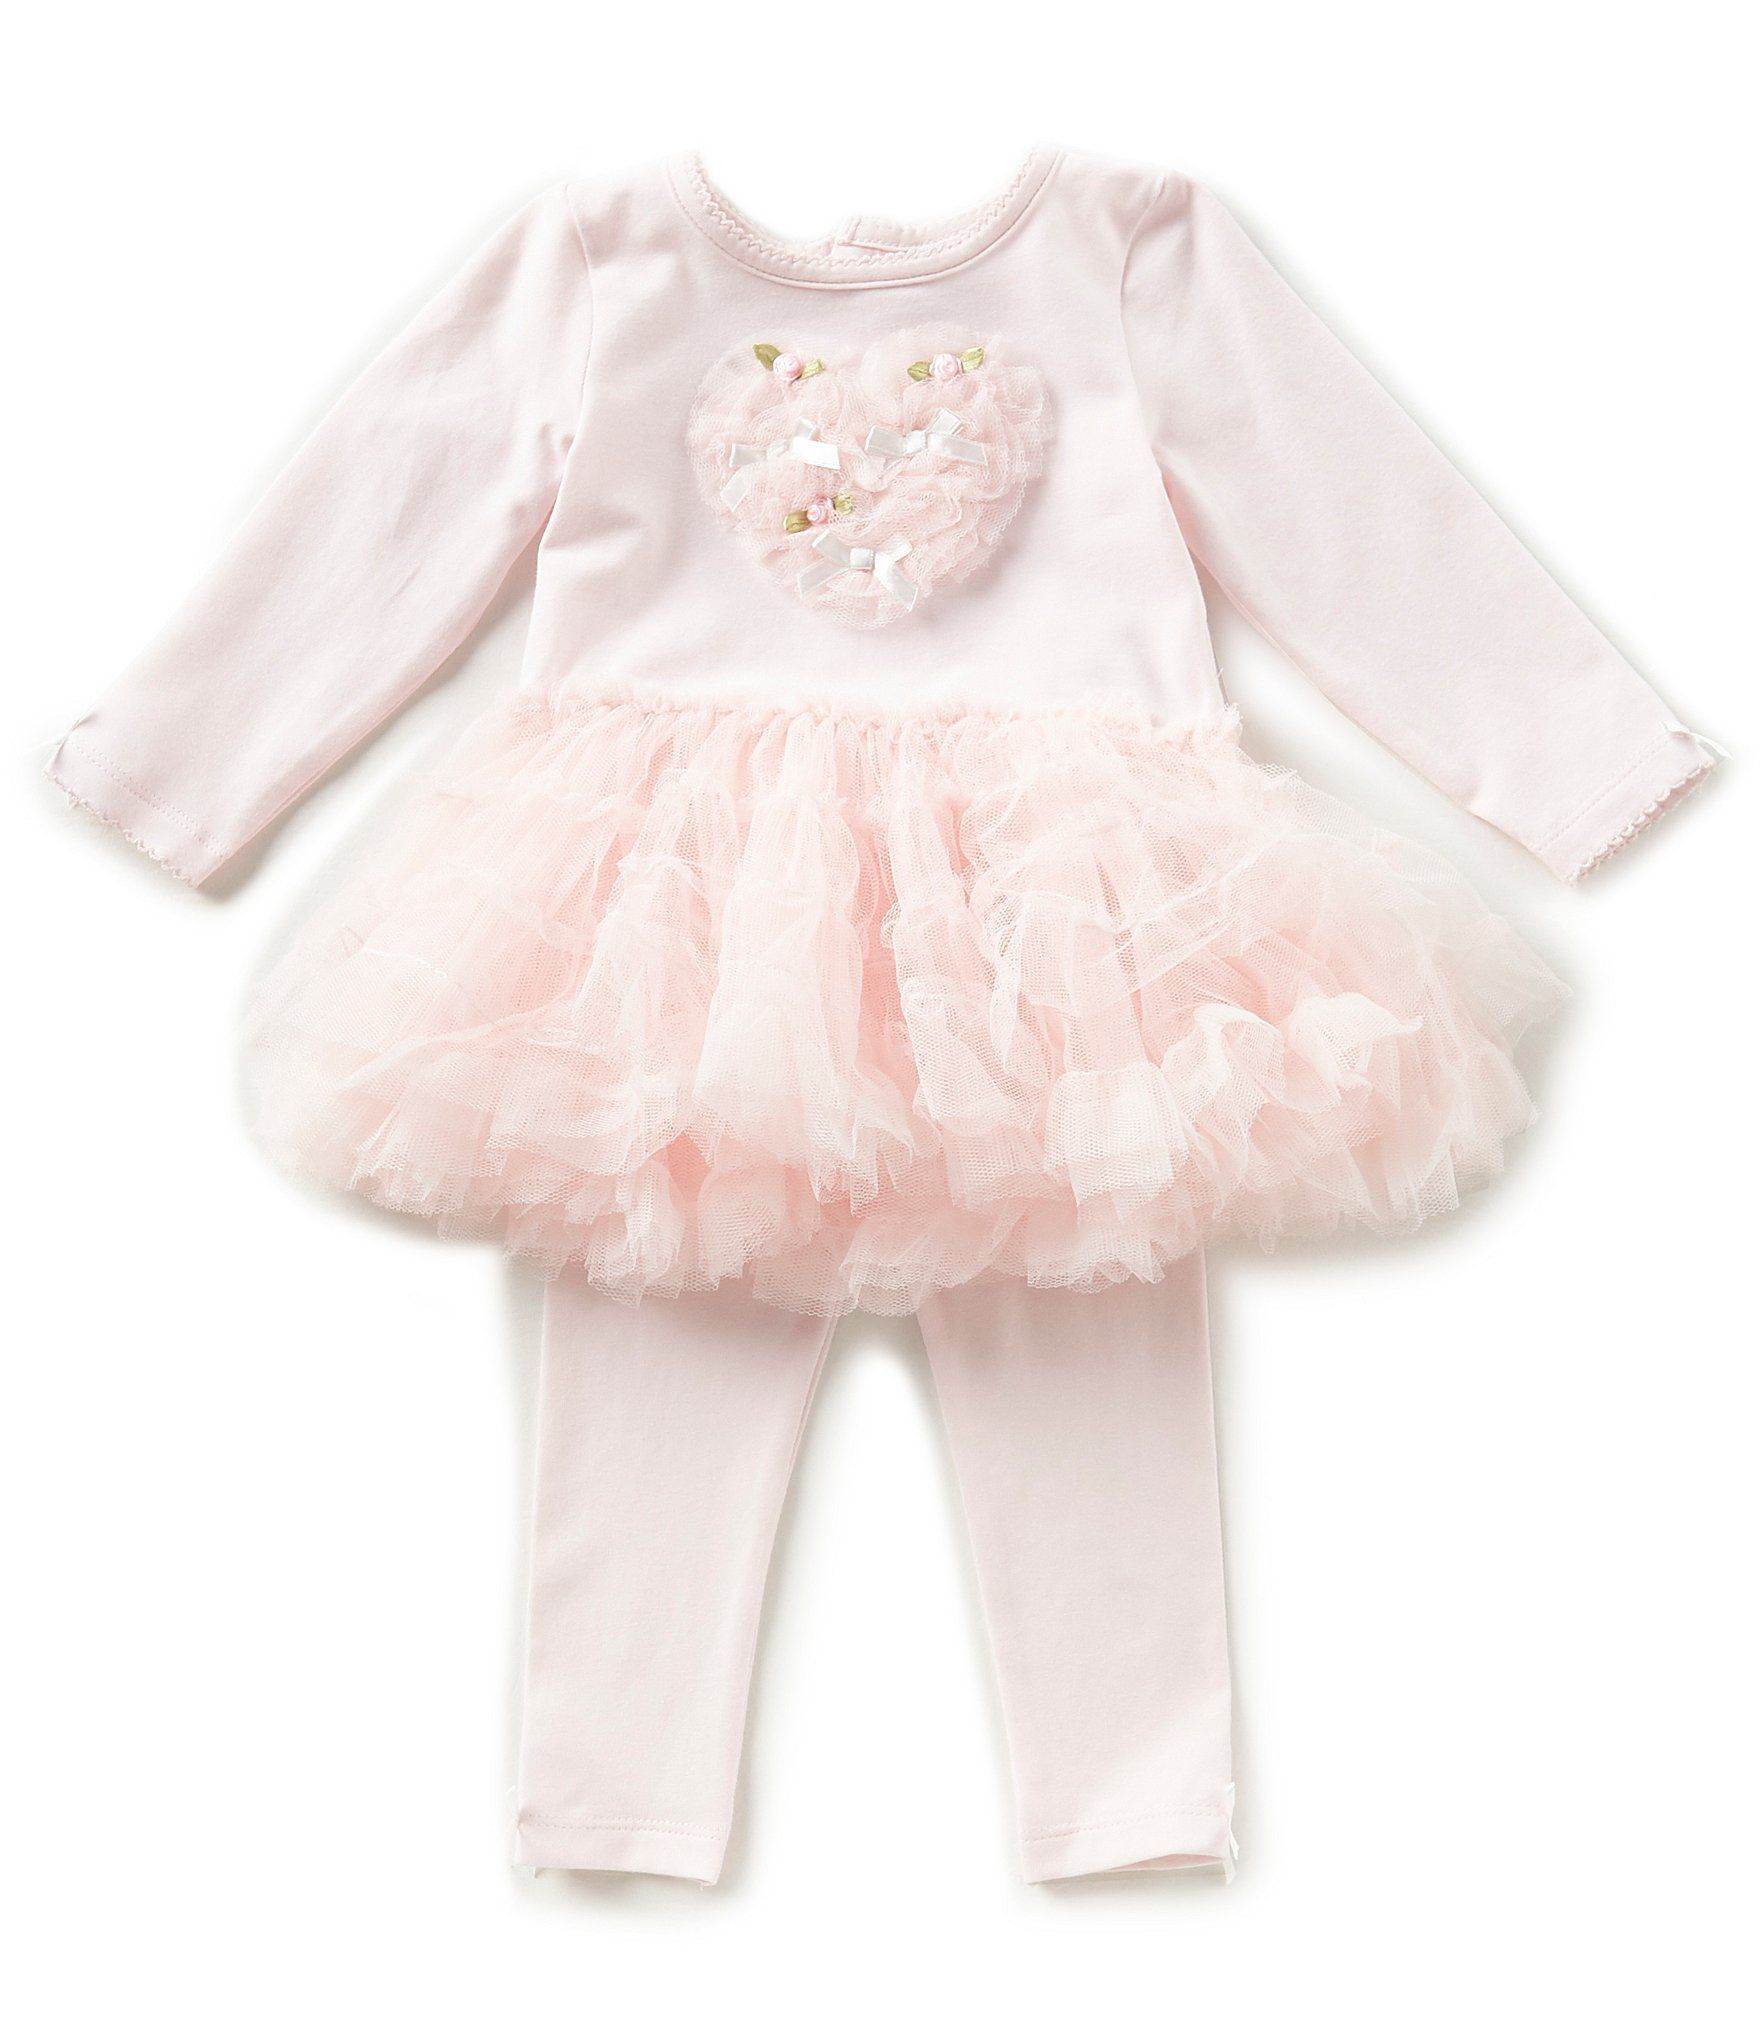 Edgehill Collection Baby Girls Newborn 6 Months Tutu Heart Top